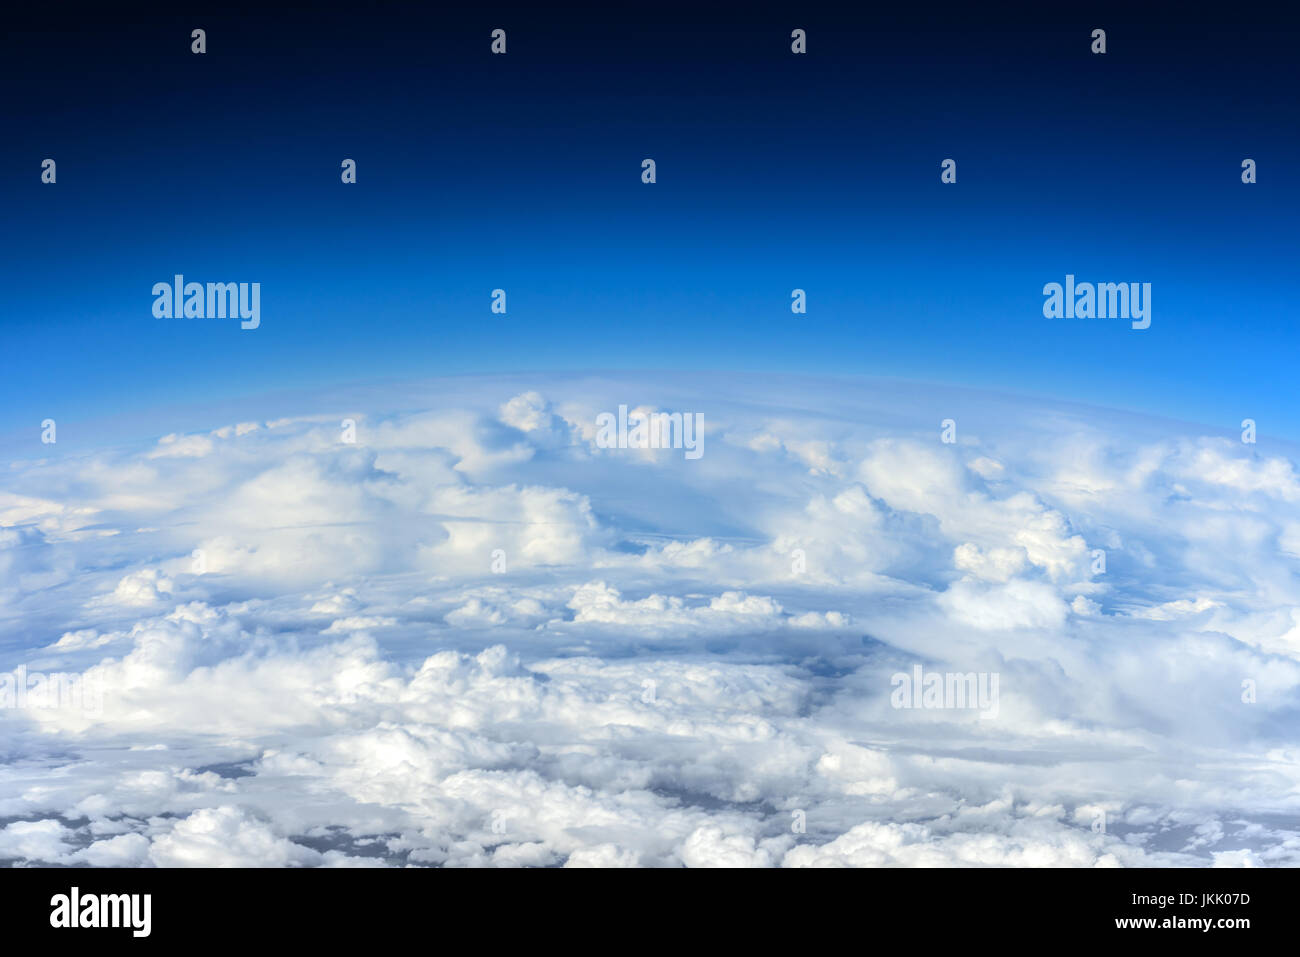 Clouds, a view from airplane window - Stock Image